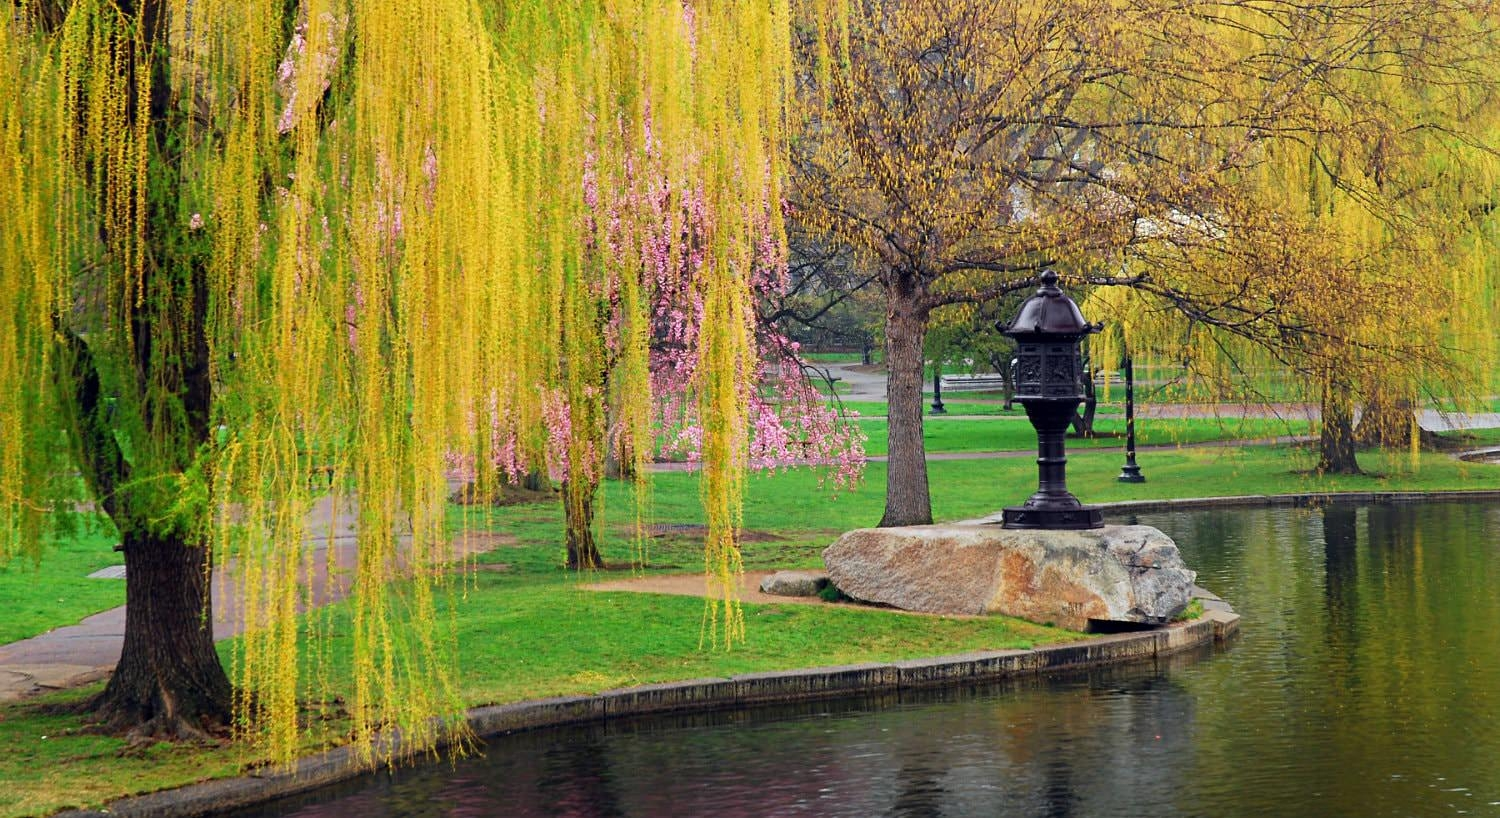 Beautiful park with trees budding with pink flowers and yellow leaves along body of water